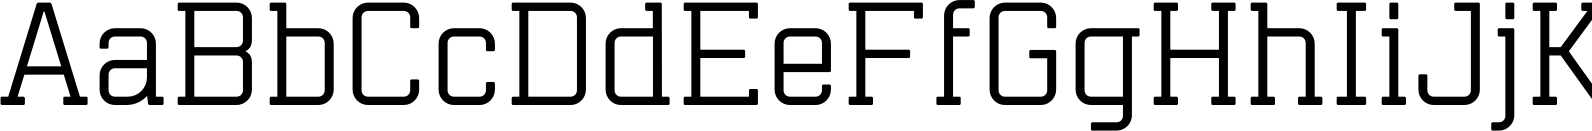 Mensura Slab Regular Font